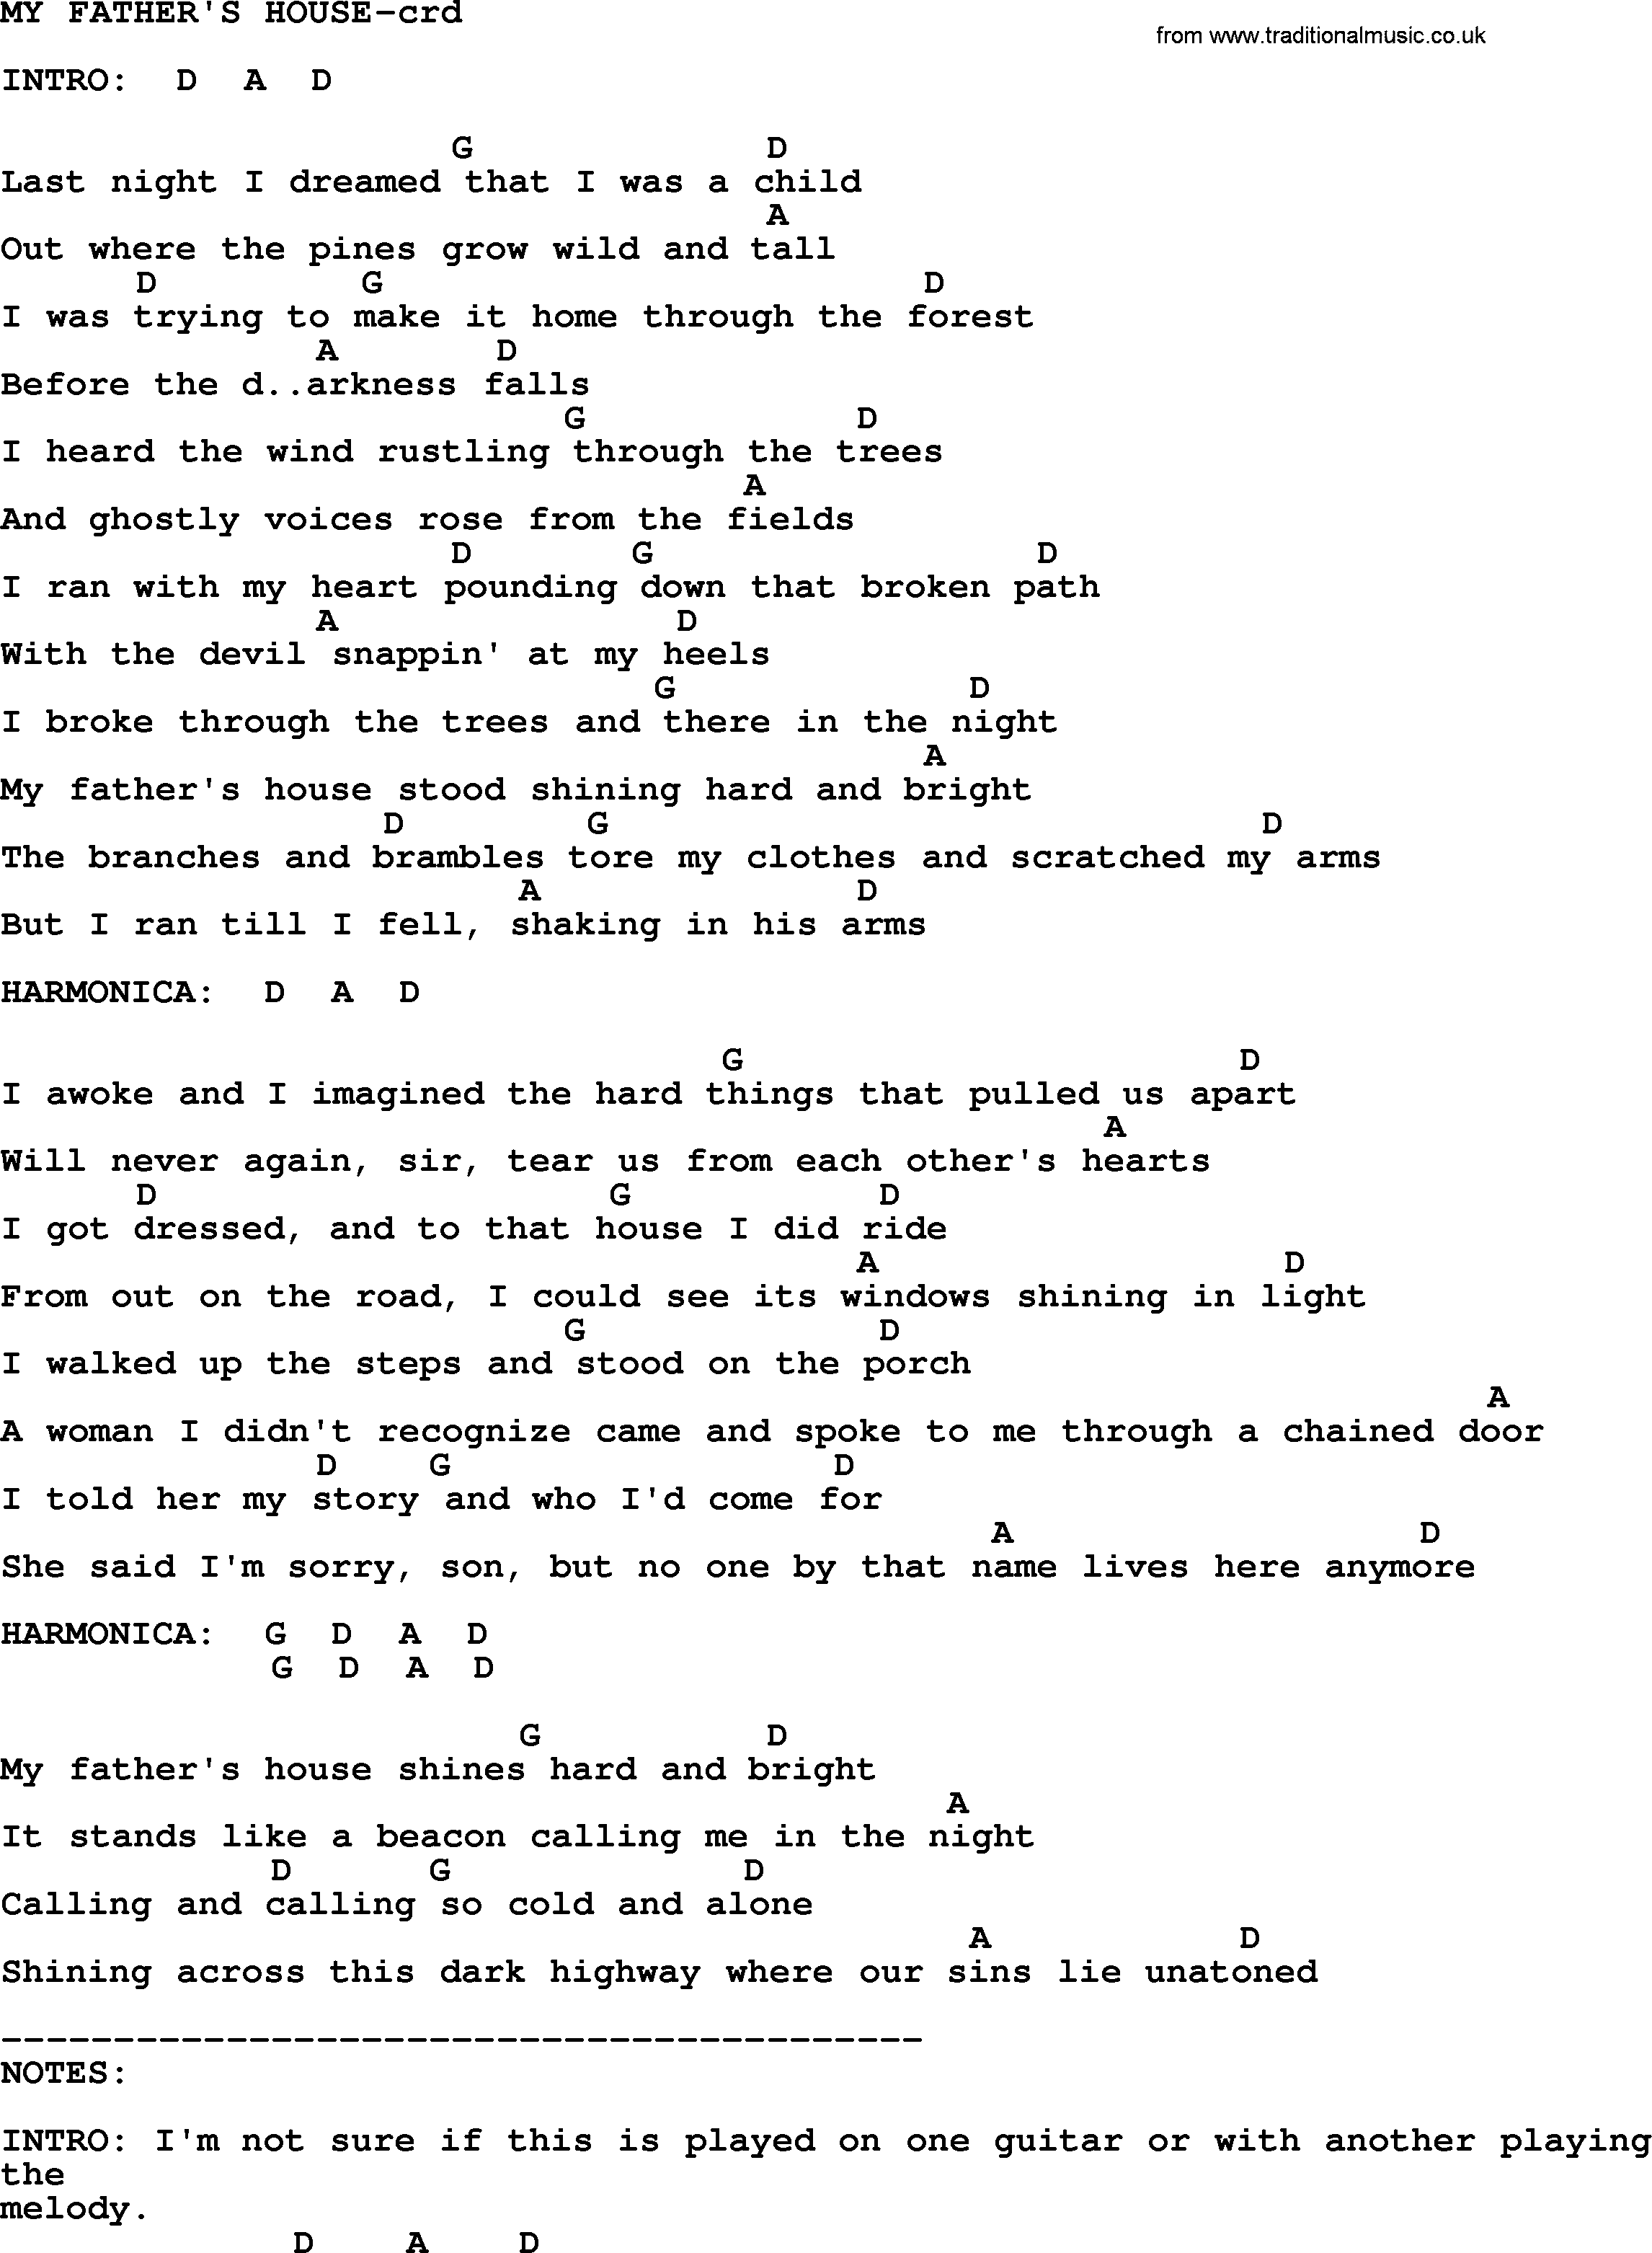 springsteen song my father s house lyrics and chords bruce springsteen song my father s house lyrics and chords